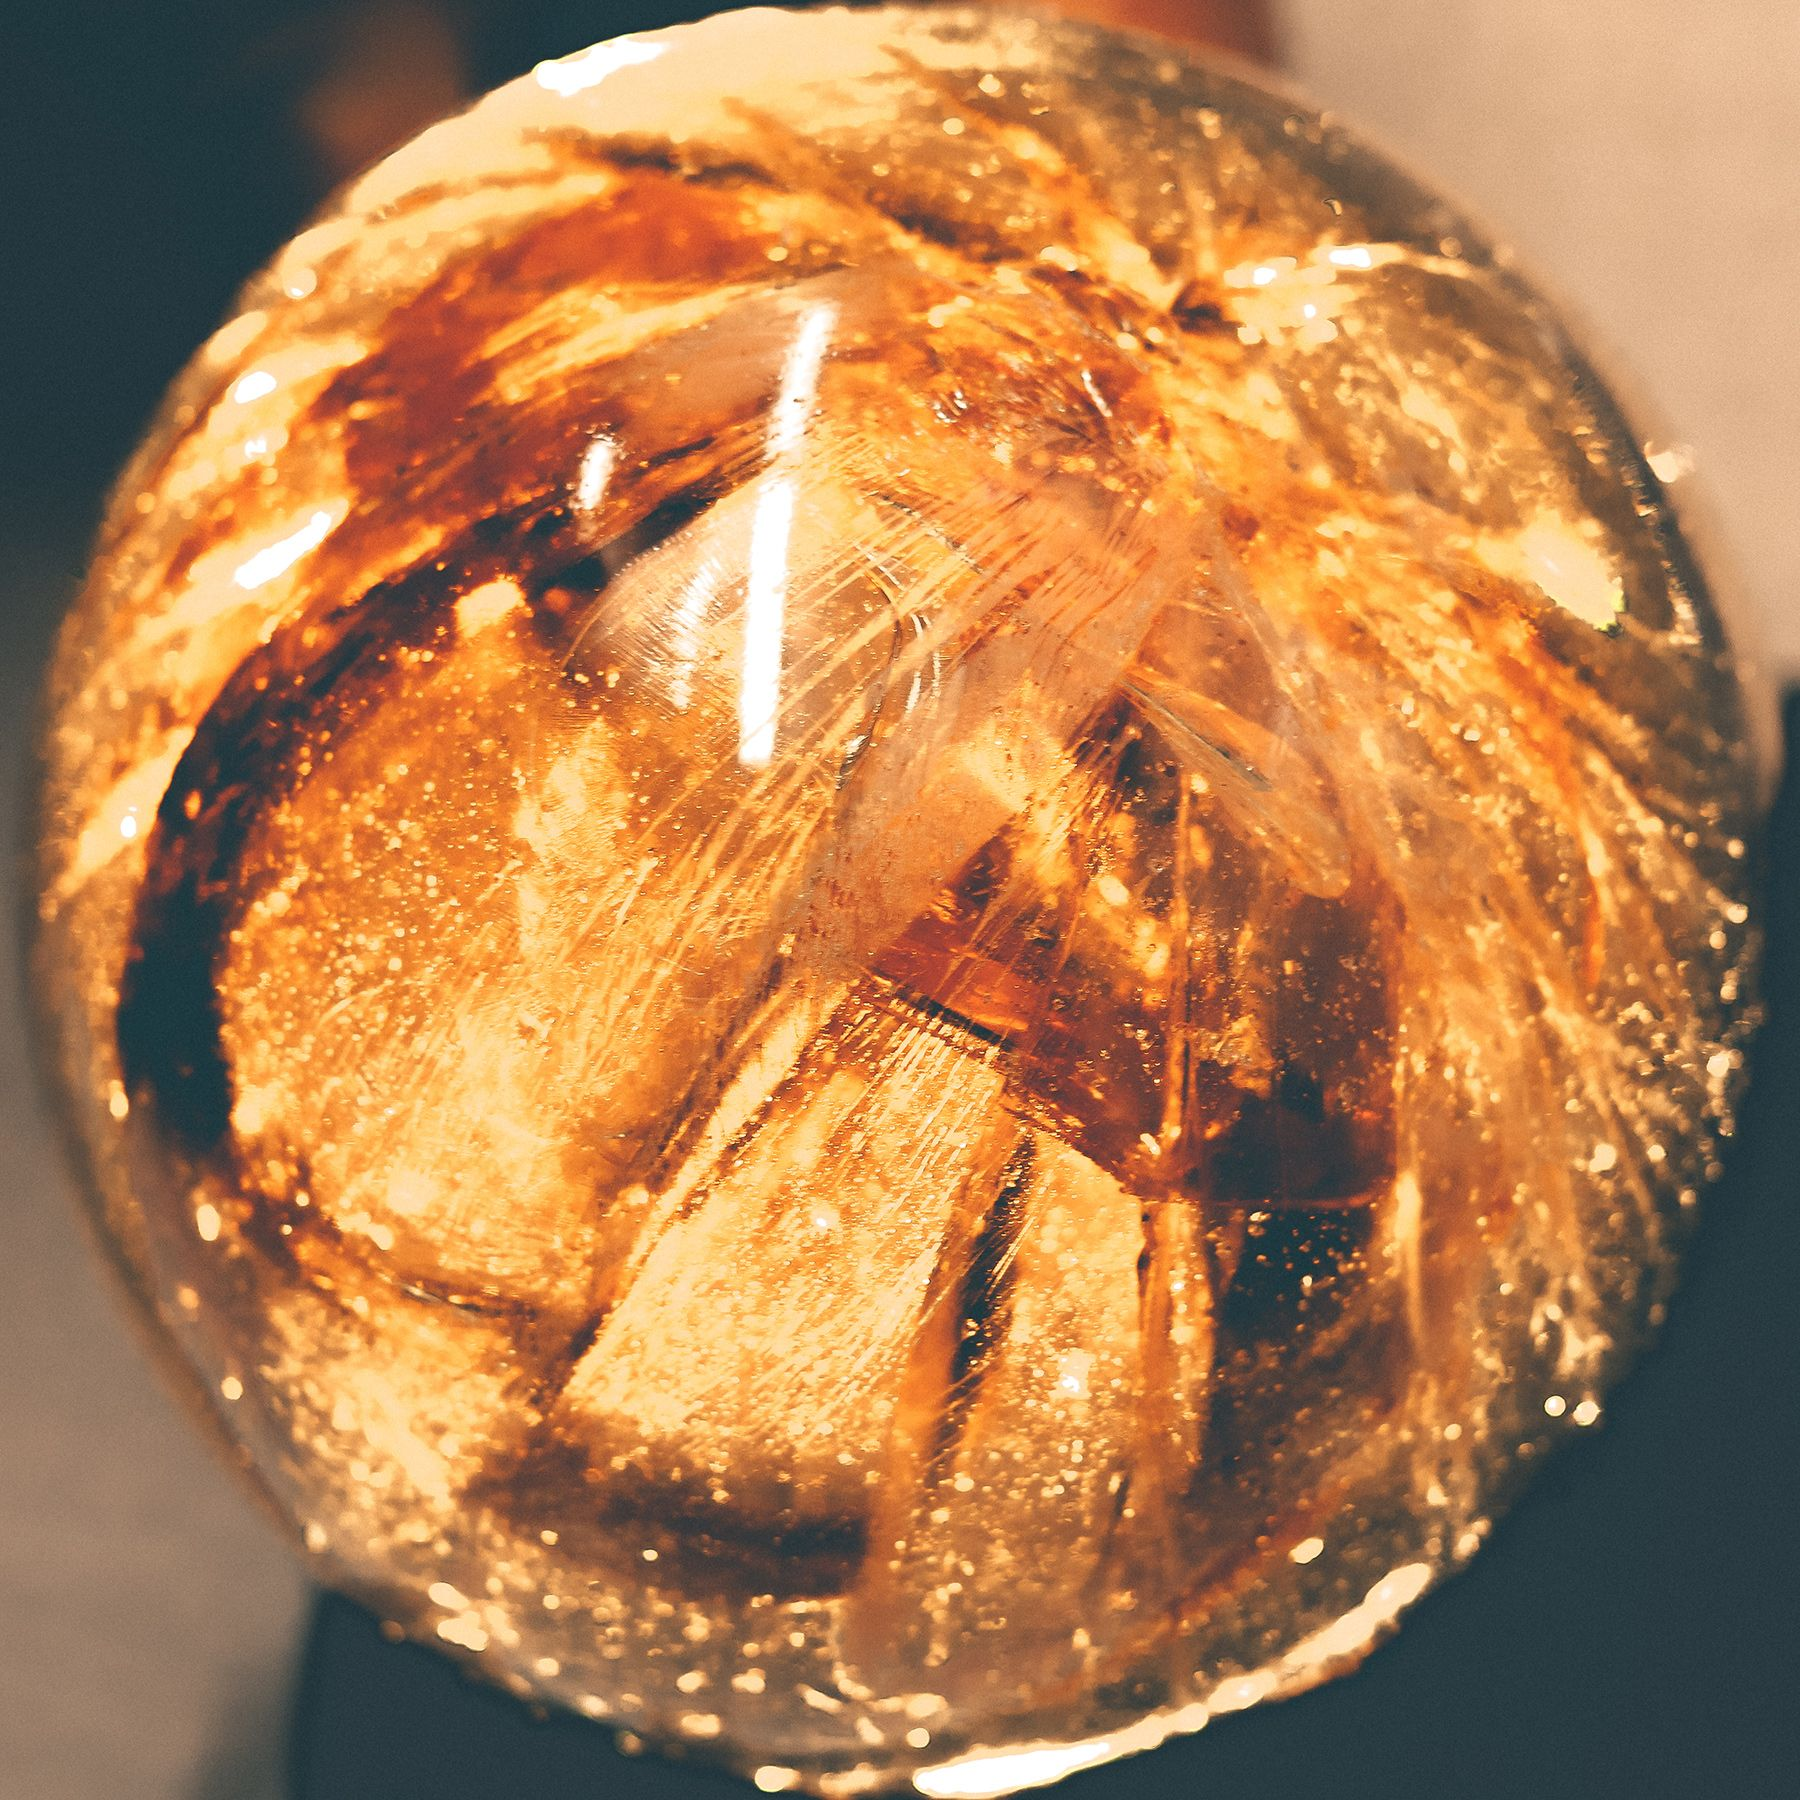 Look inside my crystal ball of distillate and tell me what